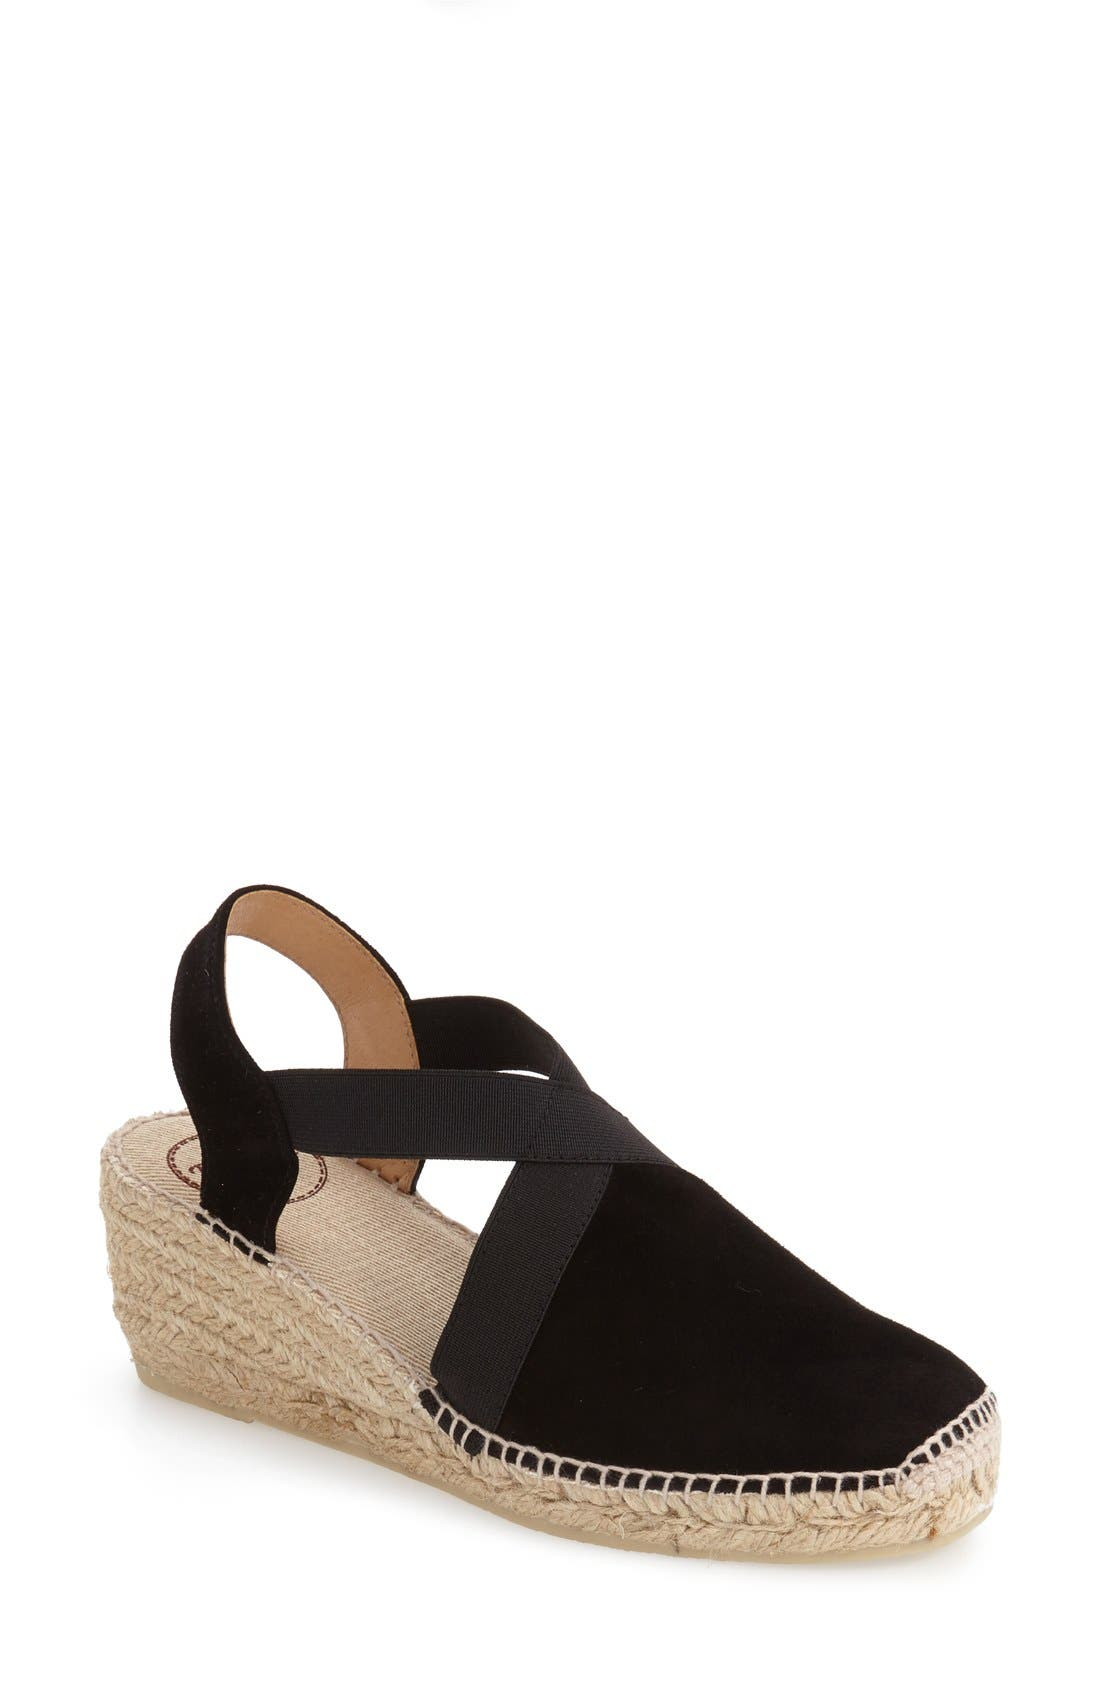 TONI PONS, Tona Espadrille Wedge, Main thumbnail 1, color, BLACK SUEDE